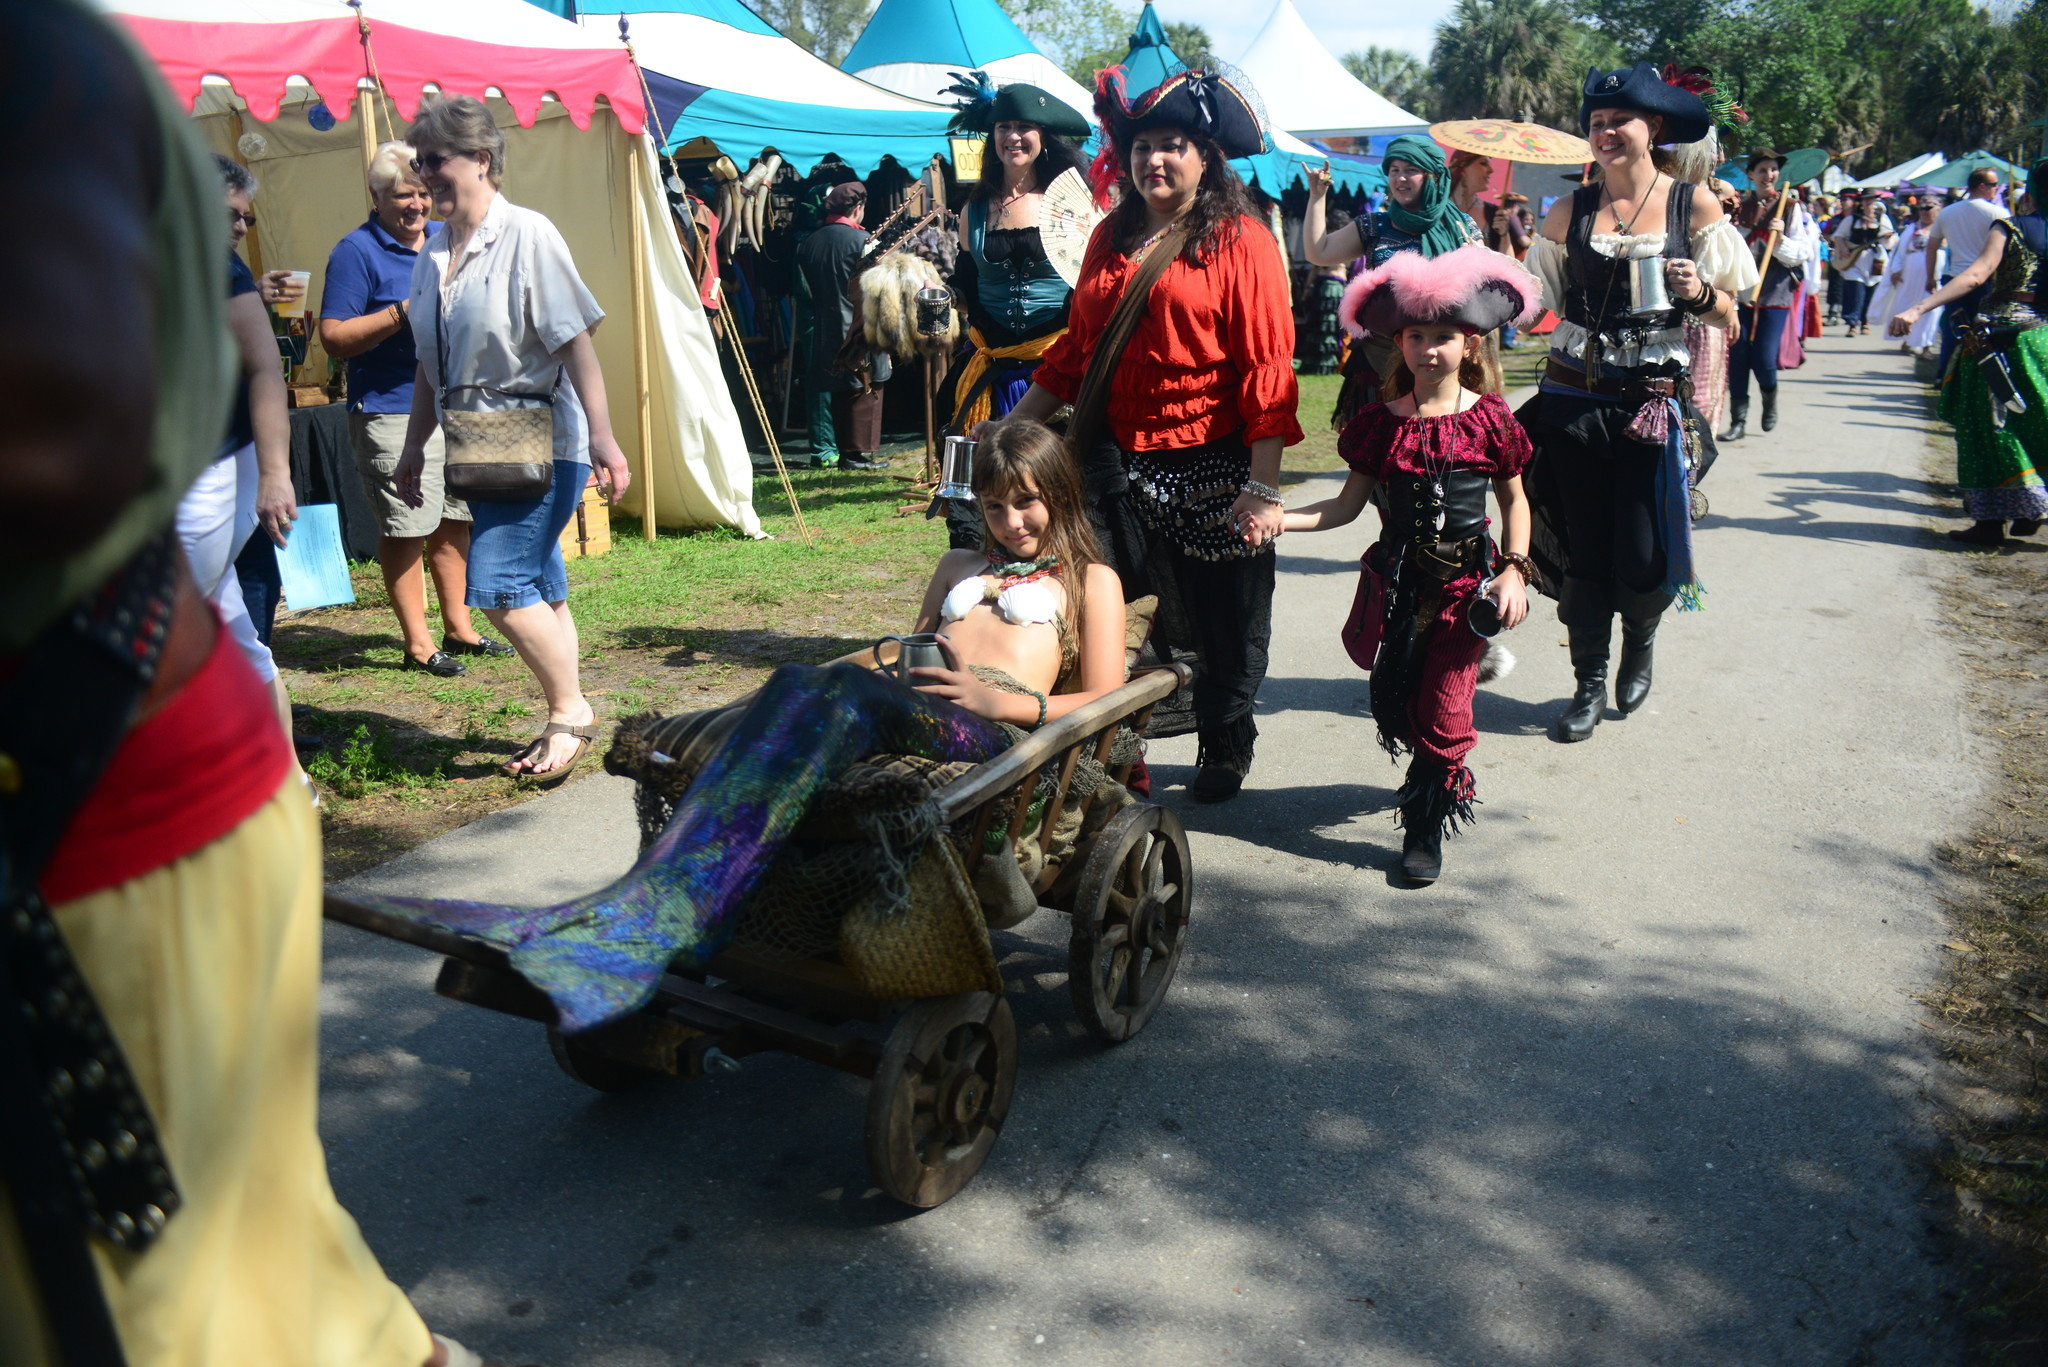 Renaissance Festival photos - Mermaid